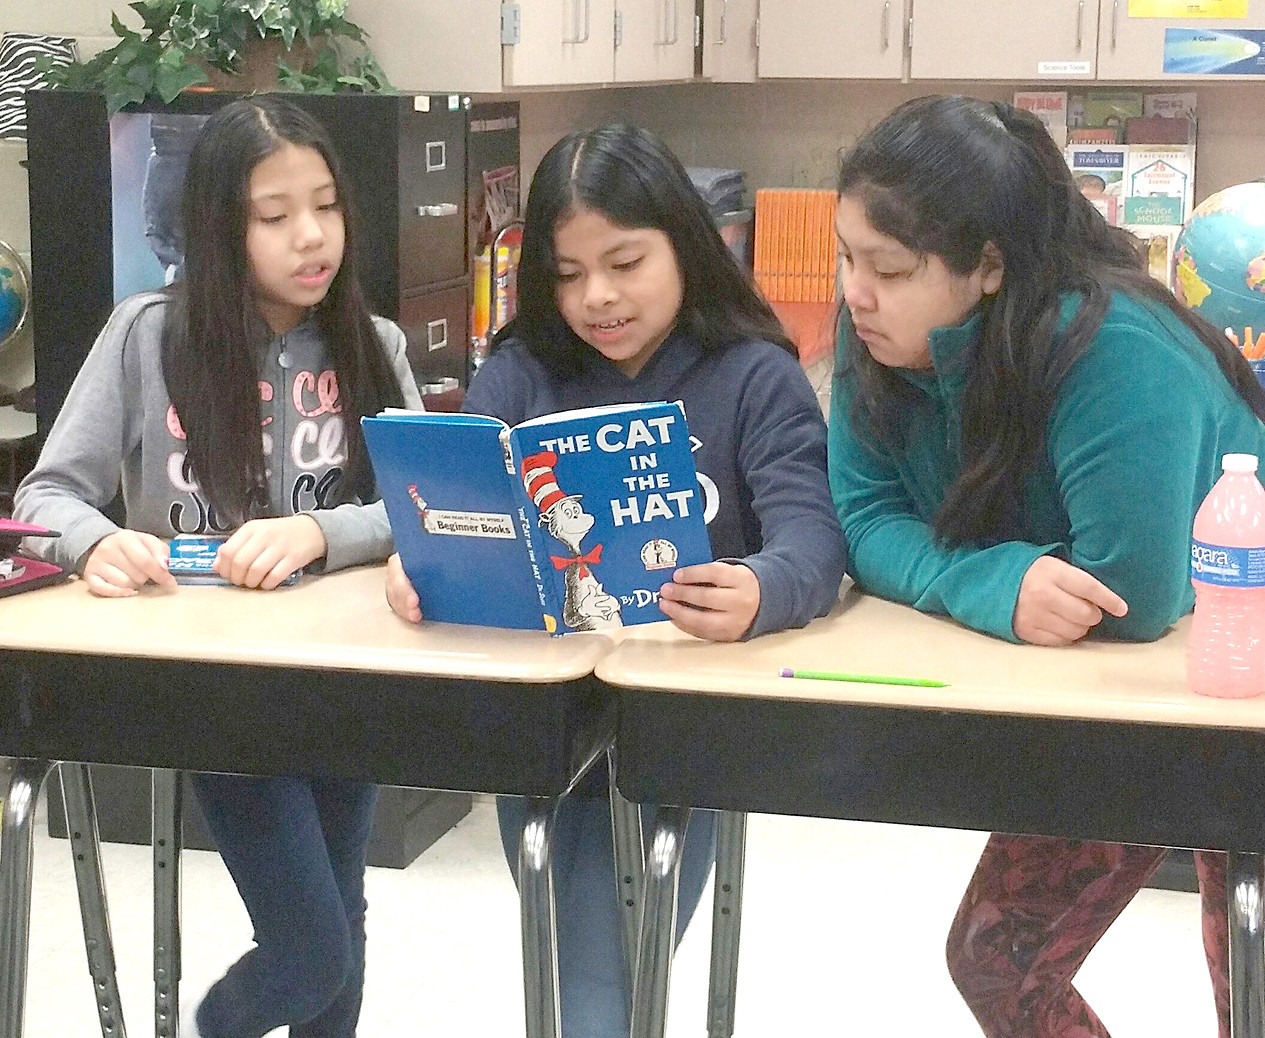 Fifth-graders Madeline Perez, Angelina Nicholas-Juan and Belinda Balthazar-Gaspar enjoy some DEAR (Drop Everything And Read) time during Dr. Seuss week at Blythe-Bower Elementary School.